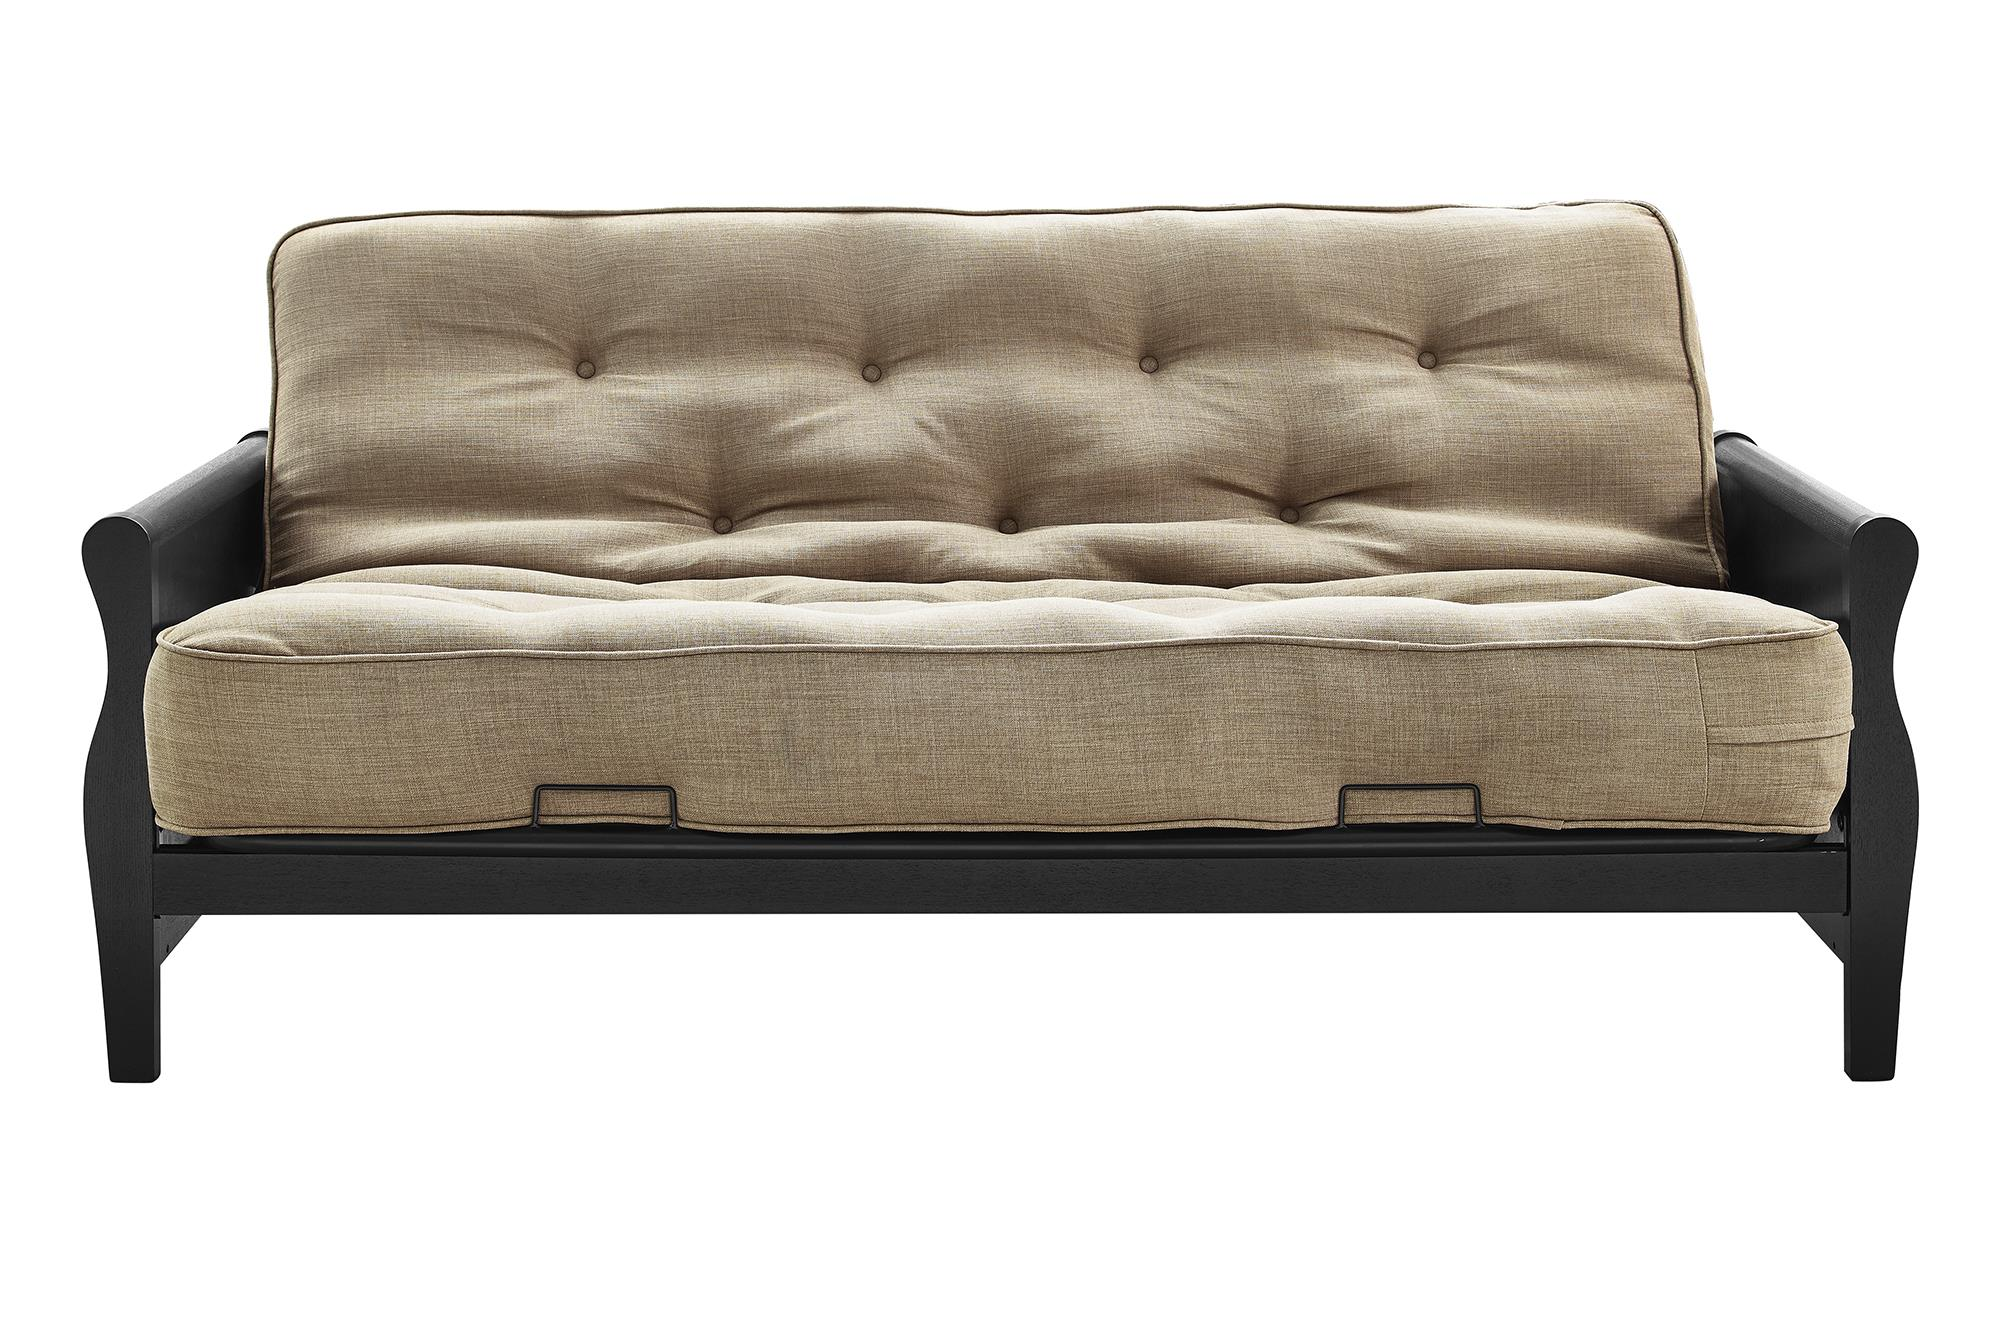 Sofa Repair Charlotte Nc Better Homes Gardens Wood Arm Futon With 8